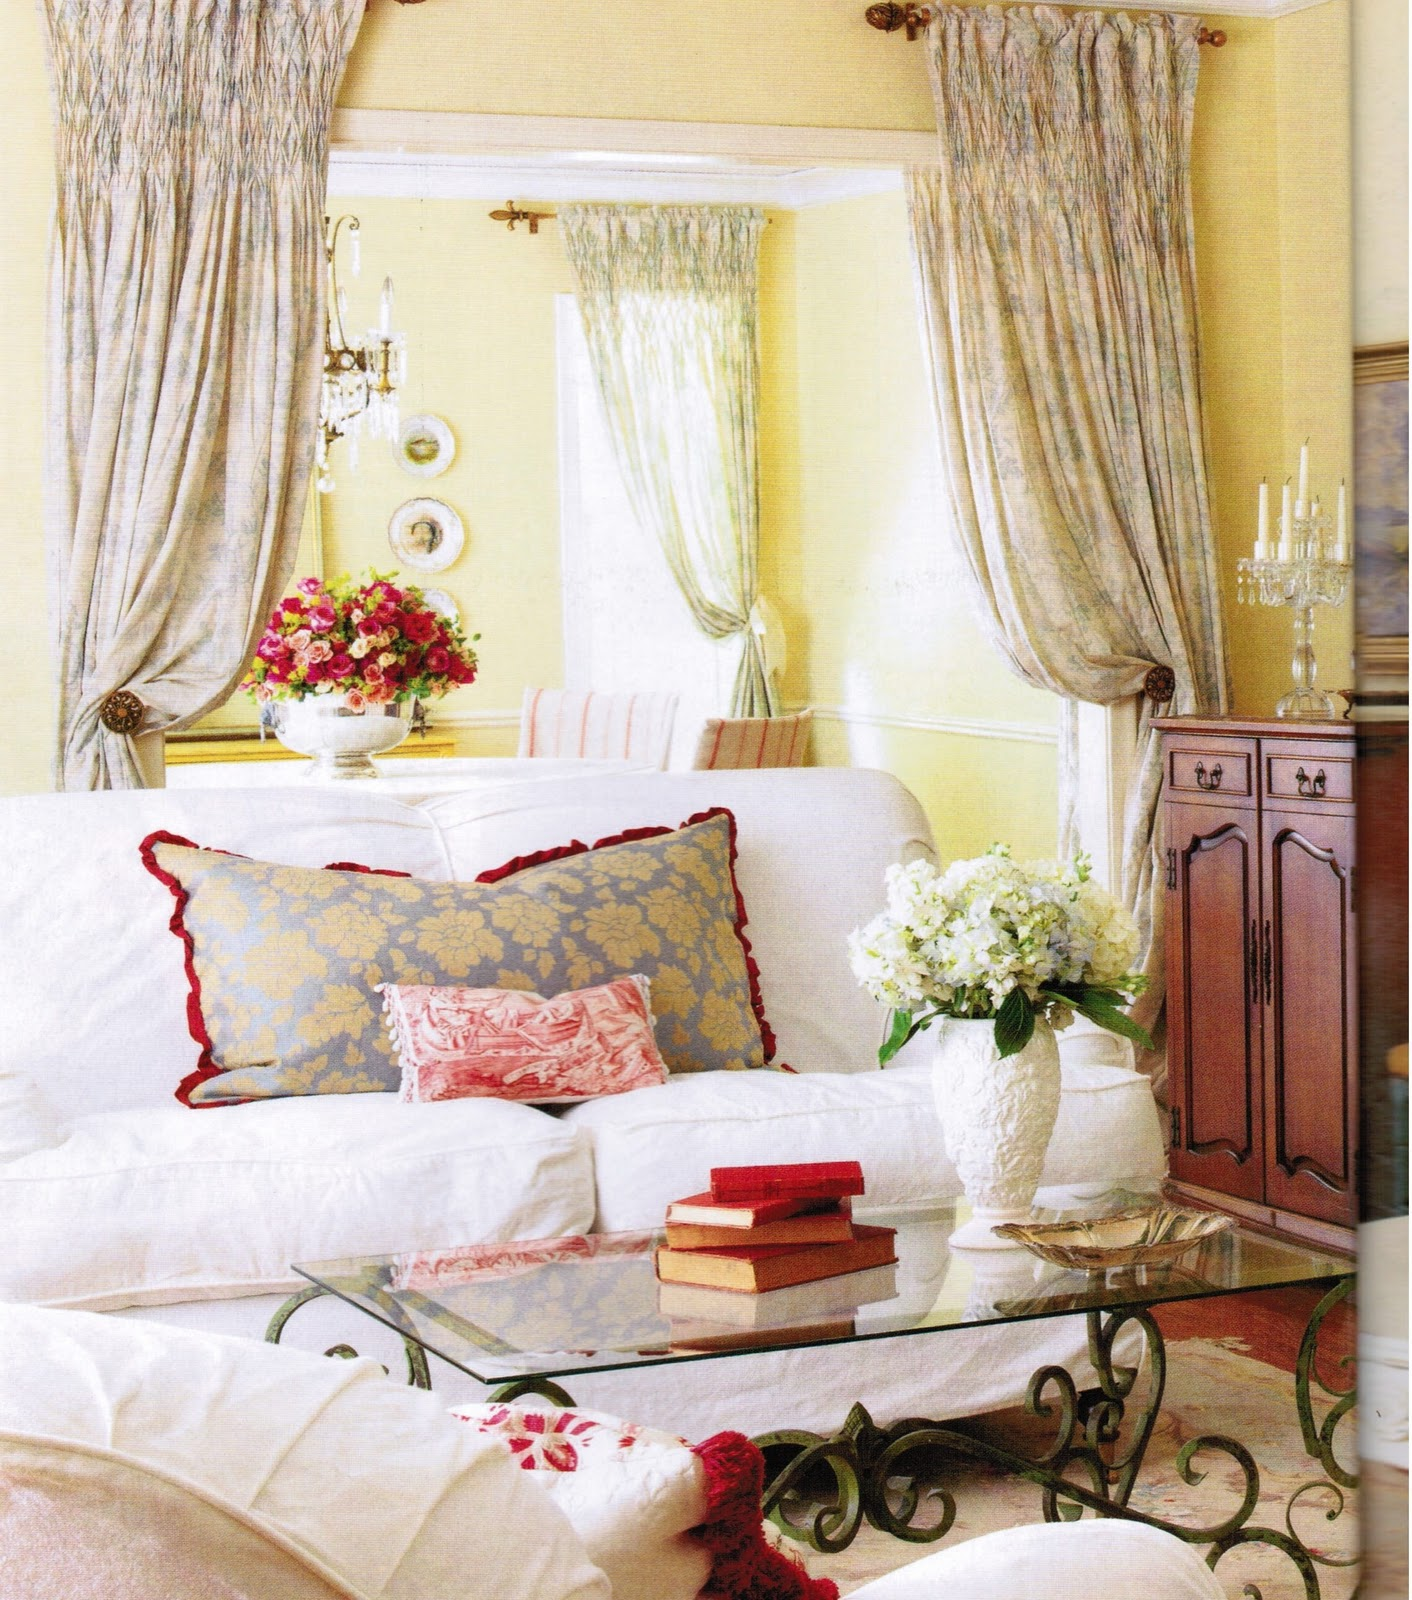 Country Decor Living Room: Maison Decor: French Country: Enchanting Yellow & White